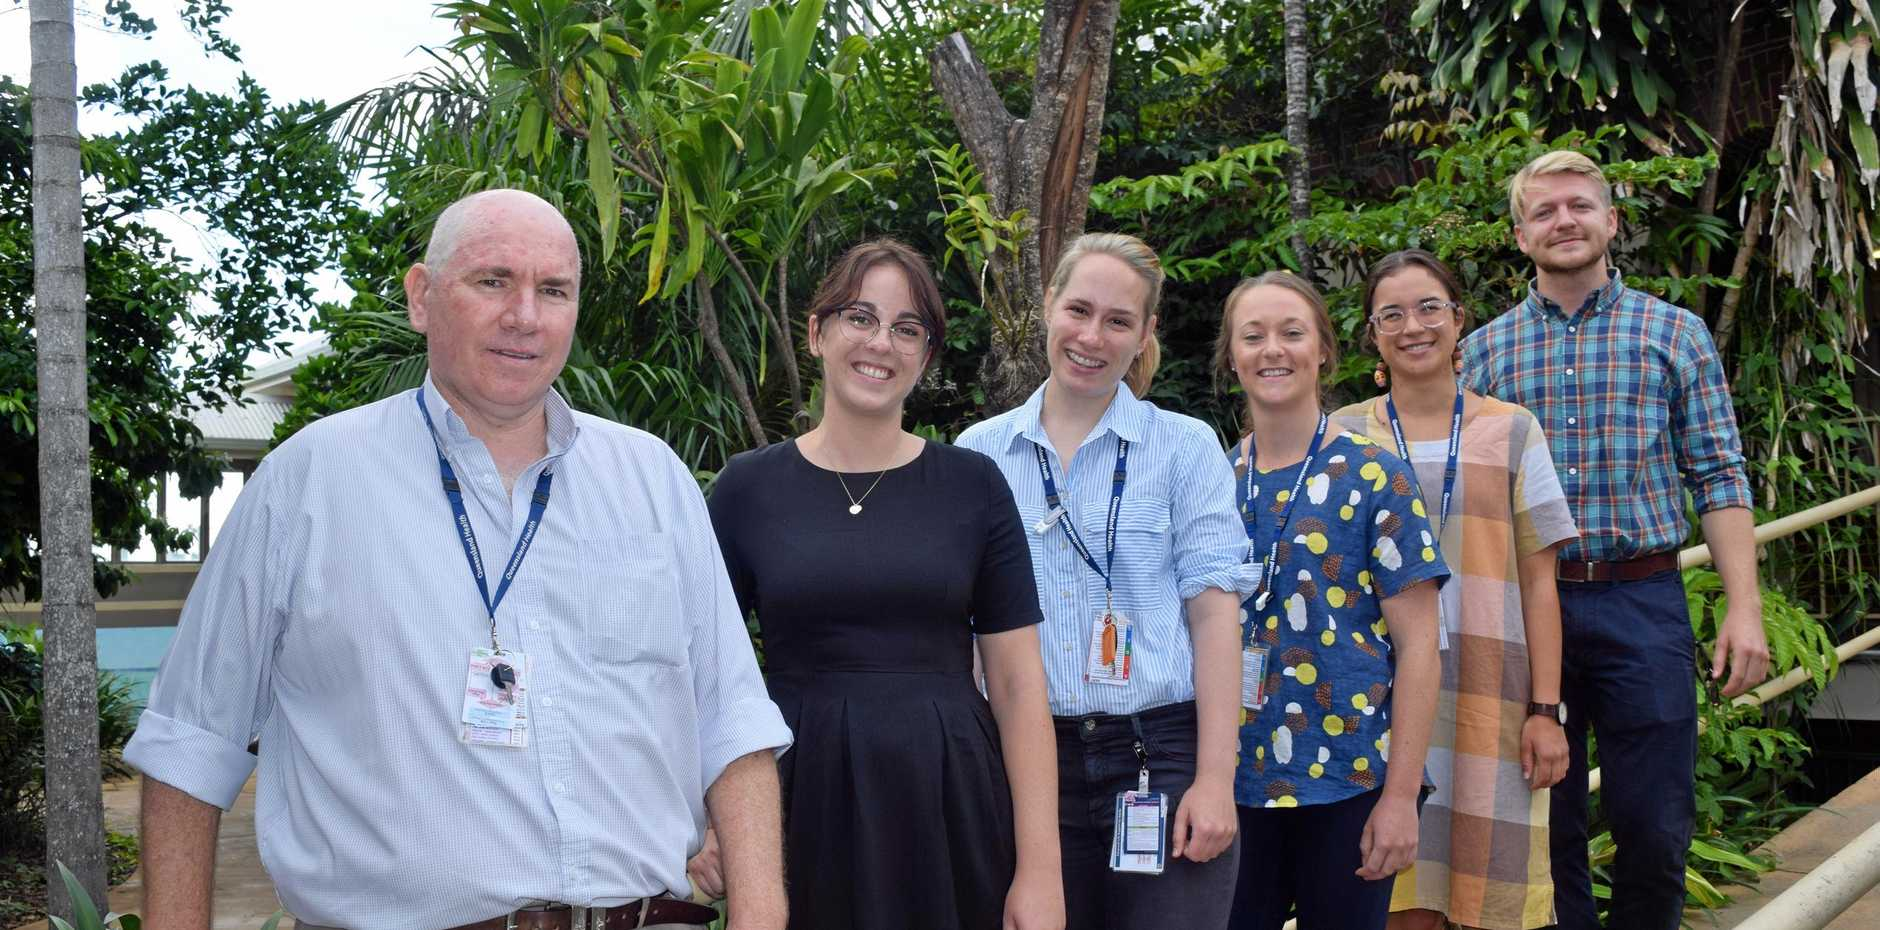 NEW INTERNS: Proserpine Hospital director of medical services Shaun Grimes welcomes interns Shannen Oversby, Samantha Stowasser, Sarah Burrell, Gia Cavalieri and William McCormack.